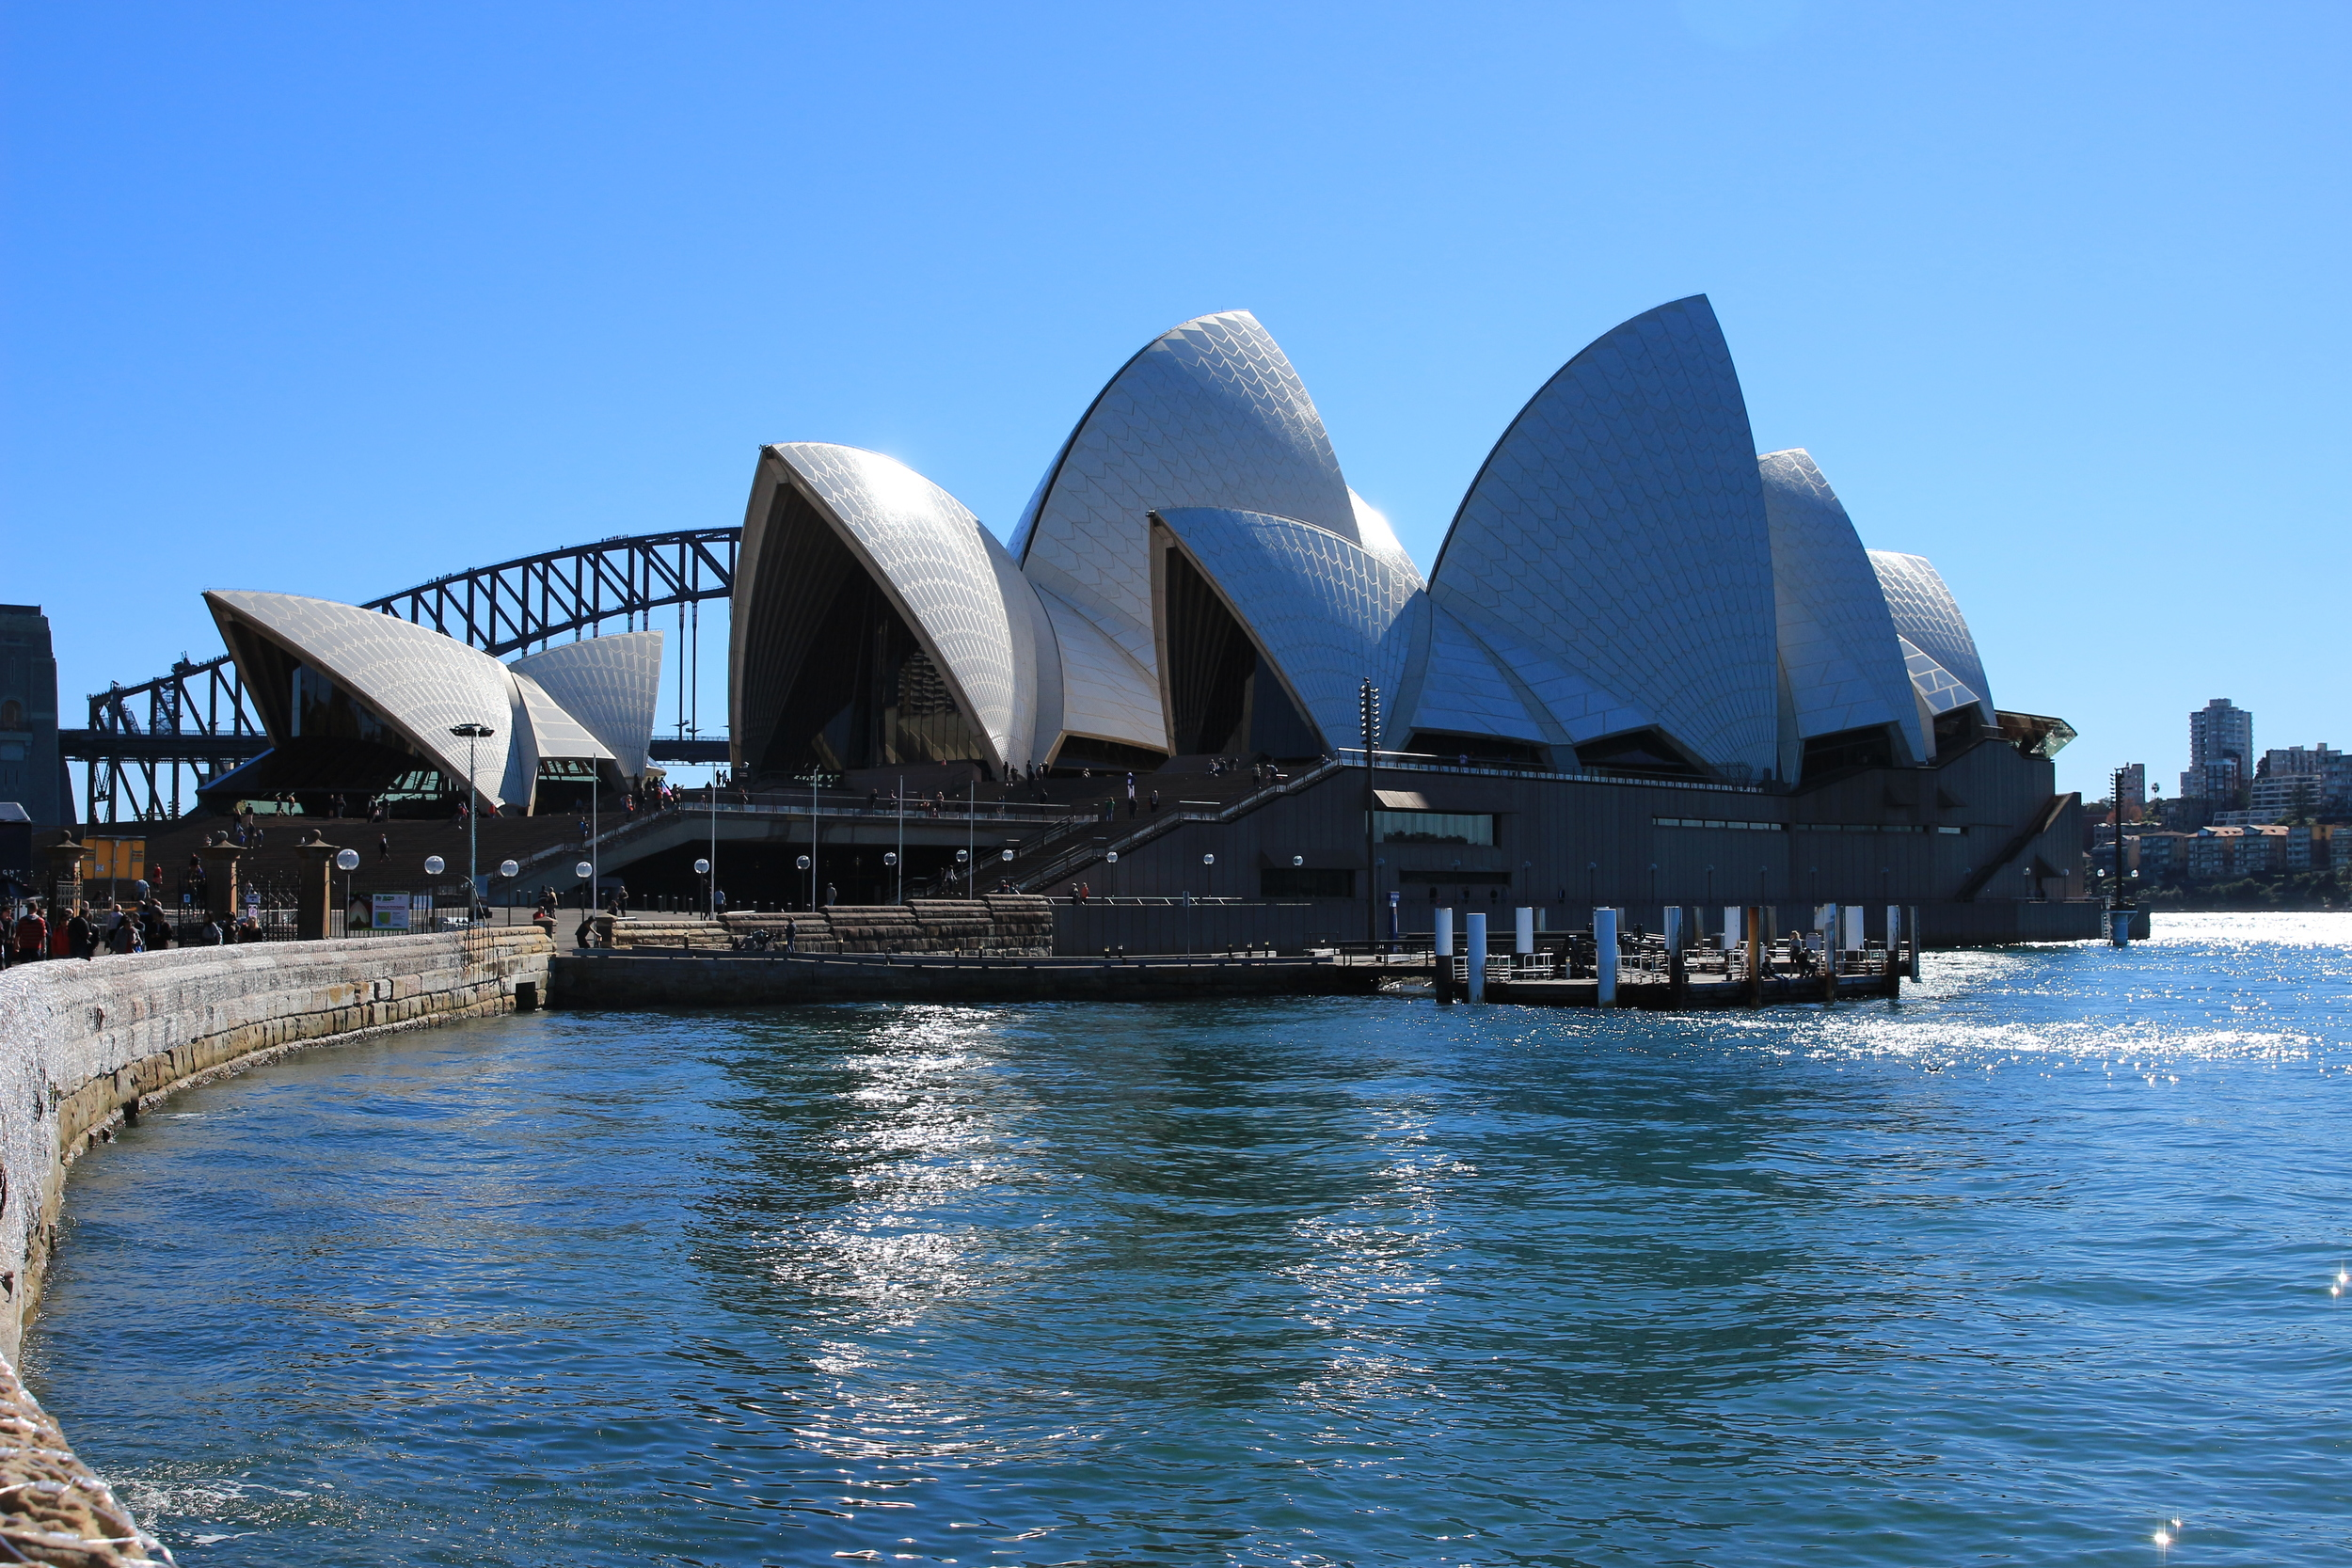 The walkway all along Sydney Harbor provided stunning views of the opera house. Even though it was winter in the Southern Hemisphere, the weather held up enough that day for a nice stroll through the park areas.  The next day however it was very cold and very windy.